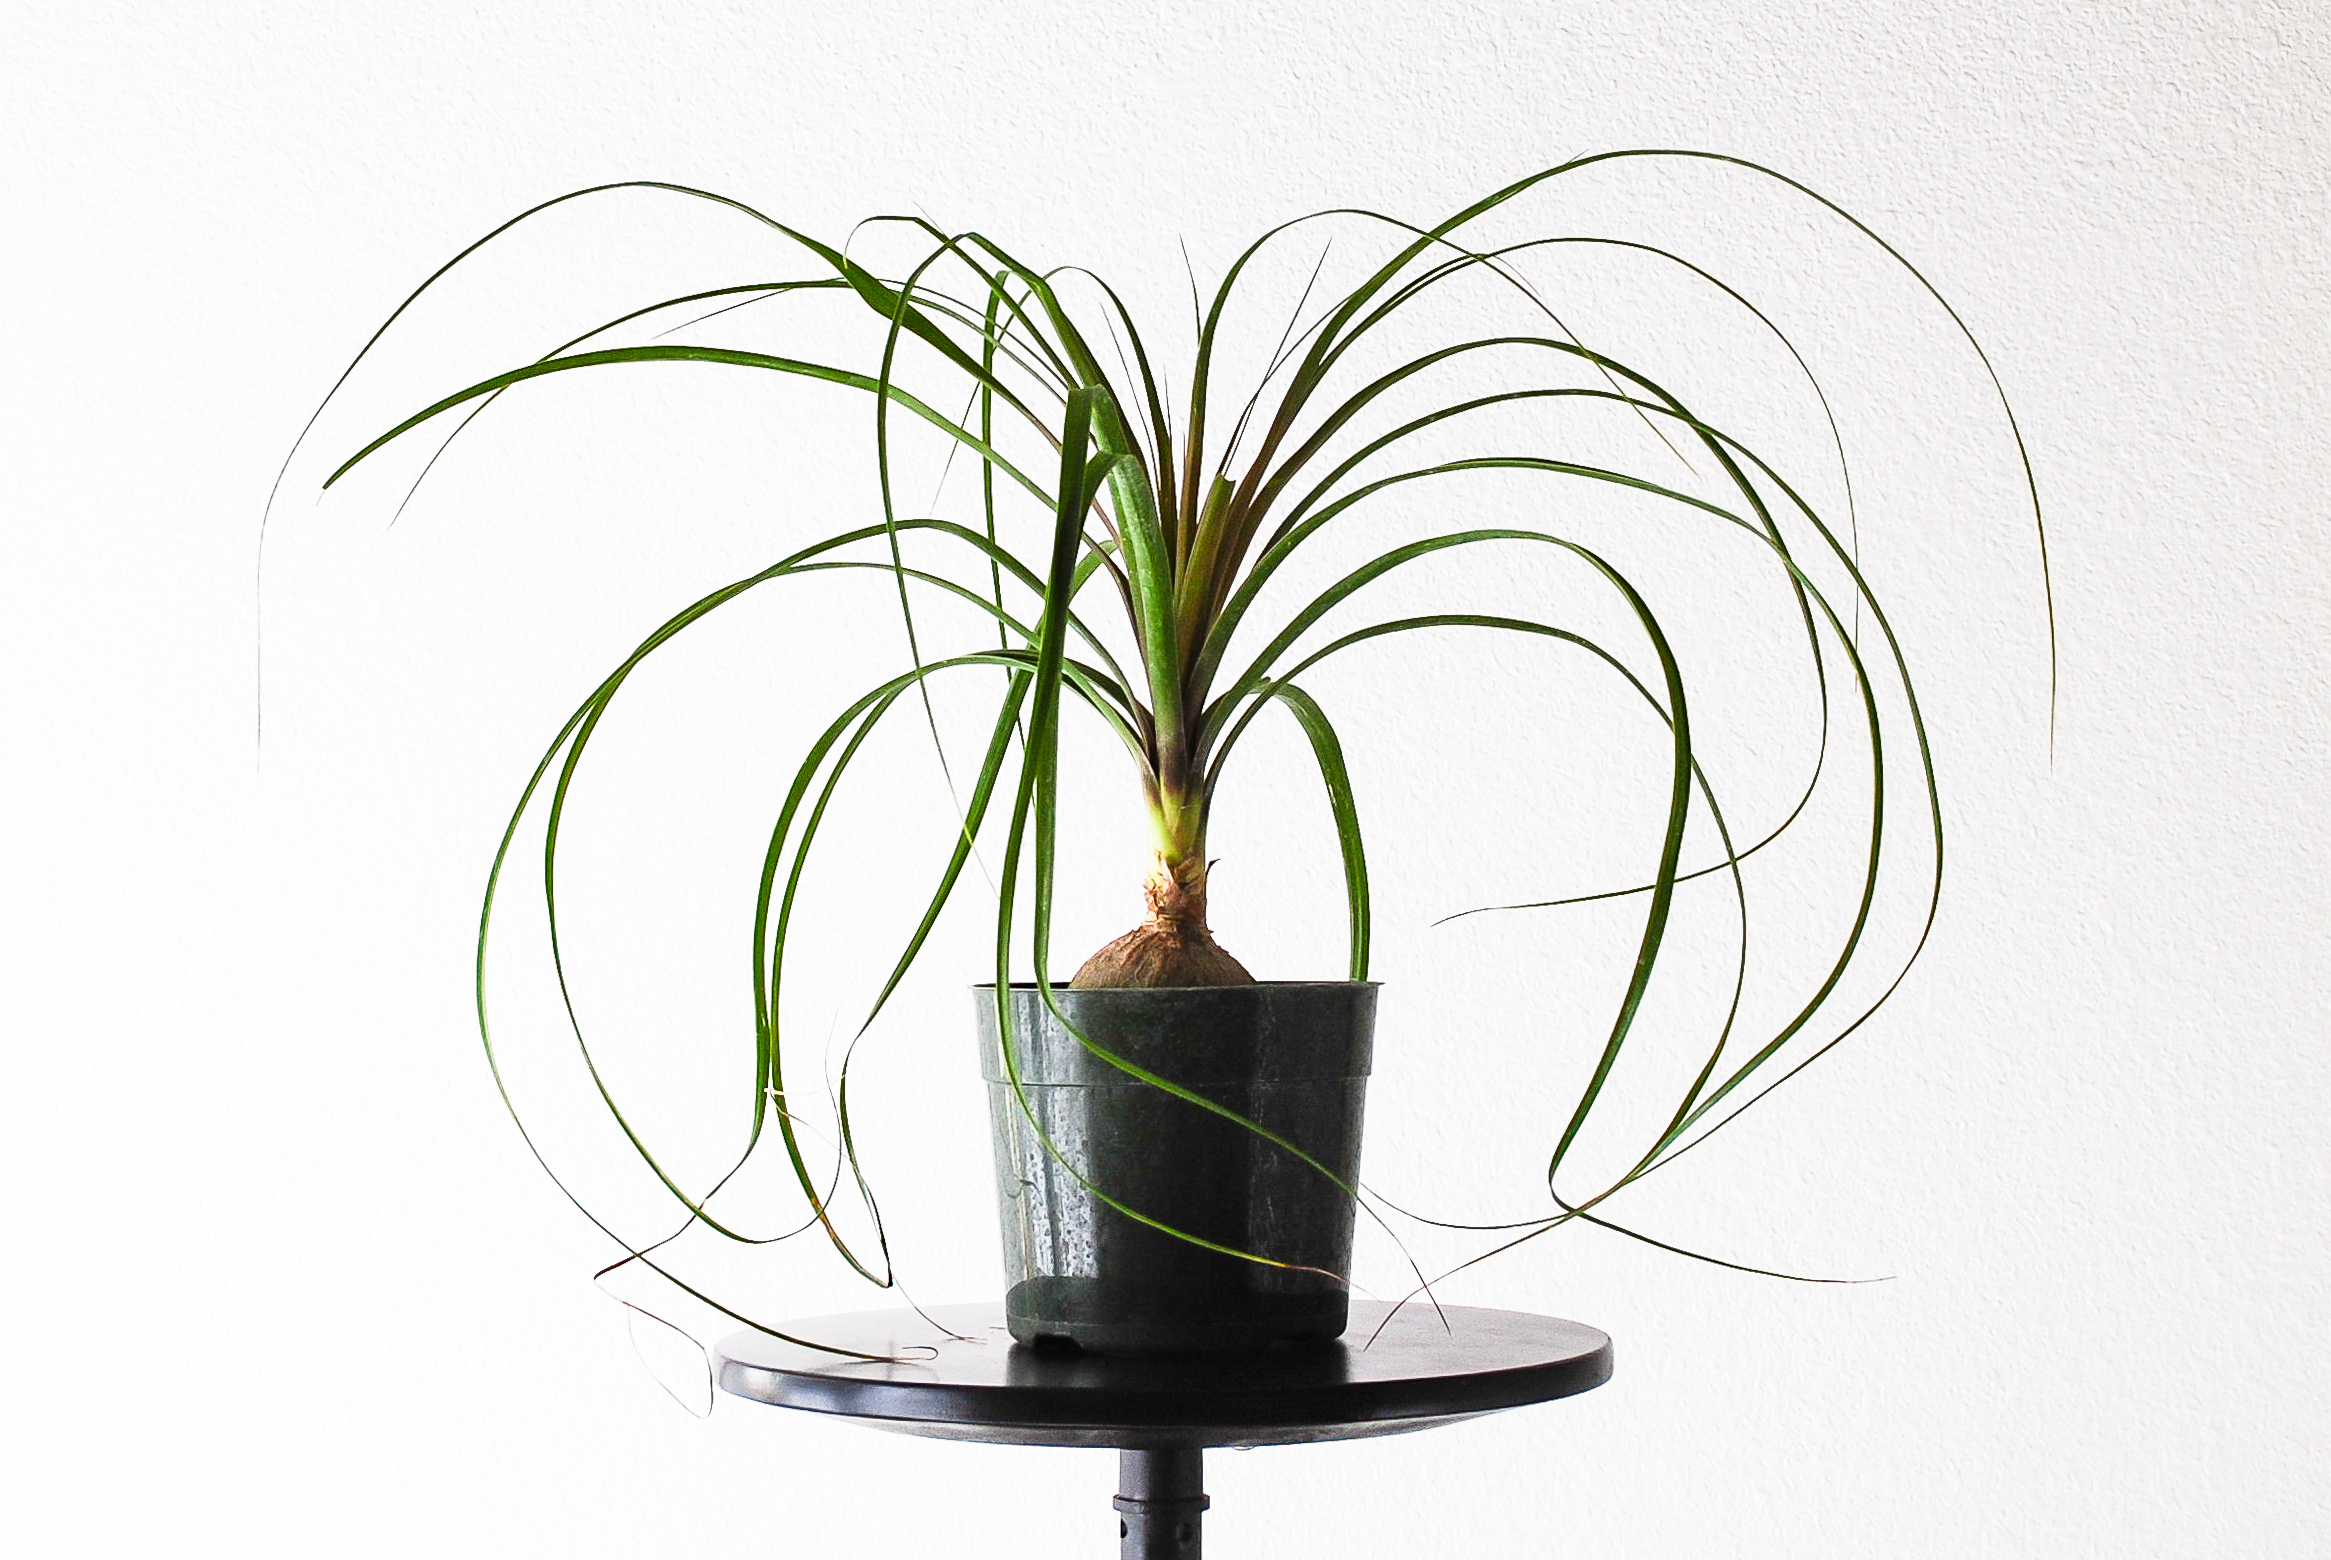 Beaucarnea recurvata or 'Ponytail Palm'.